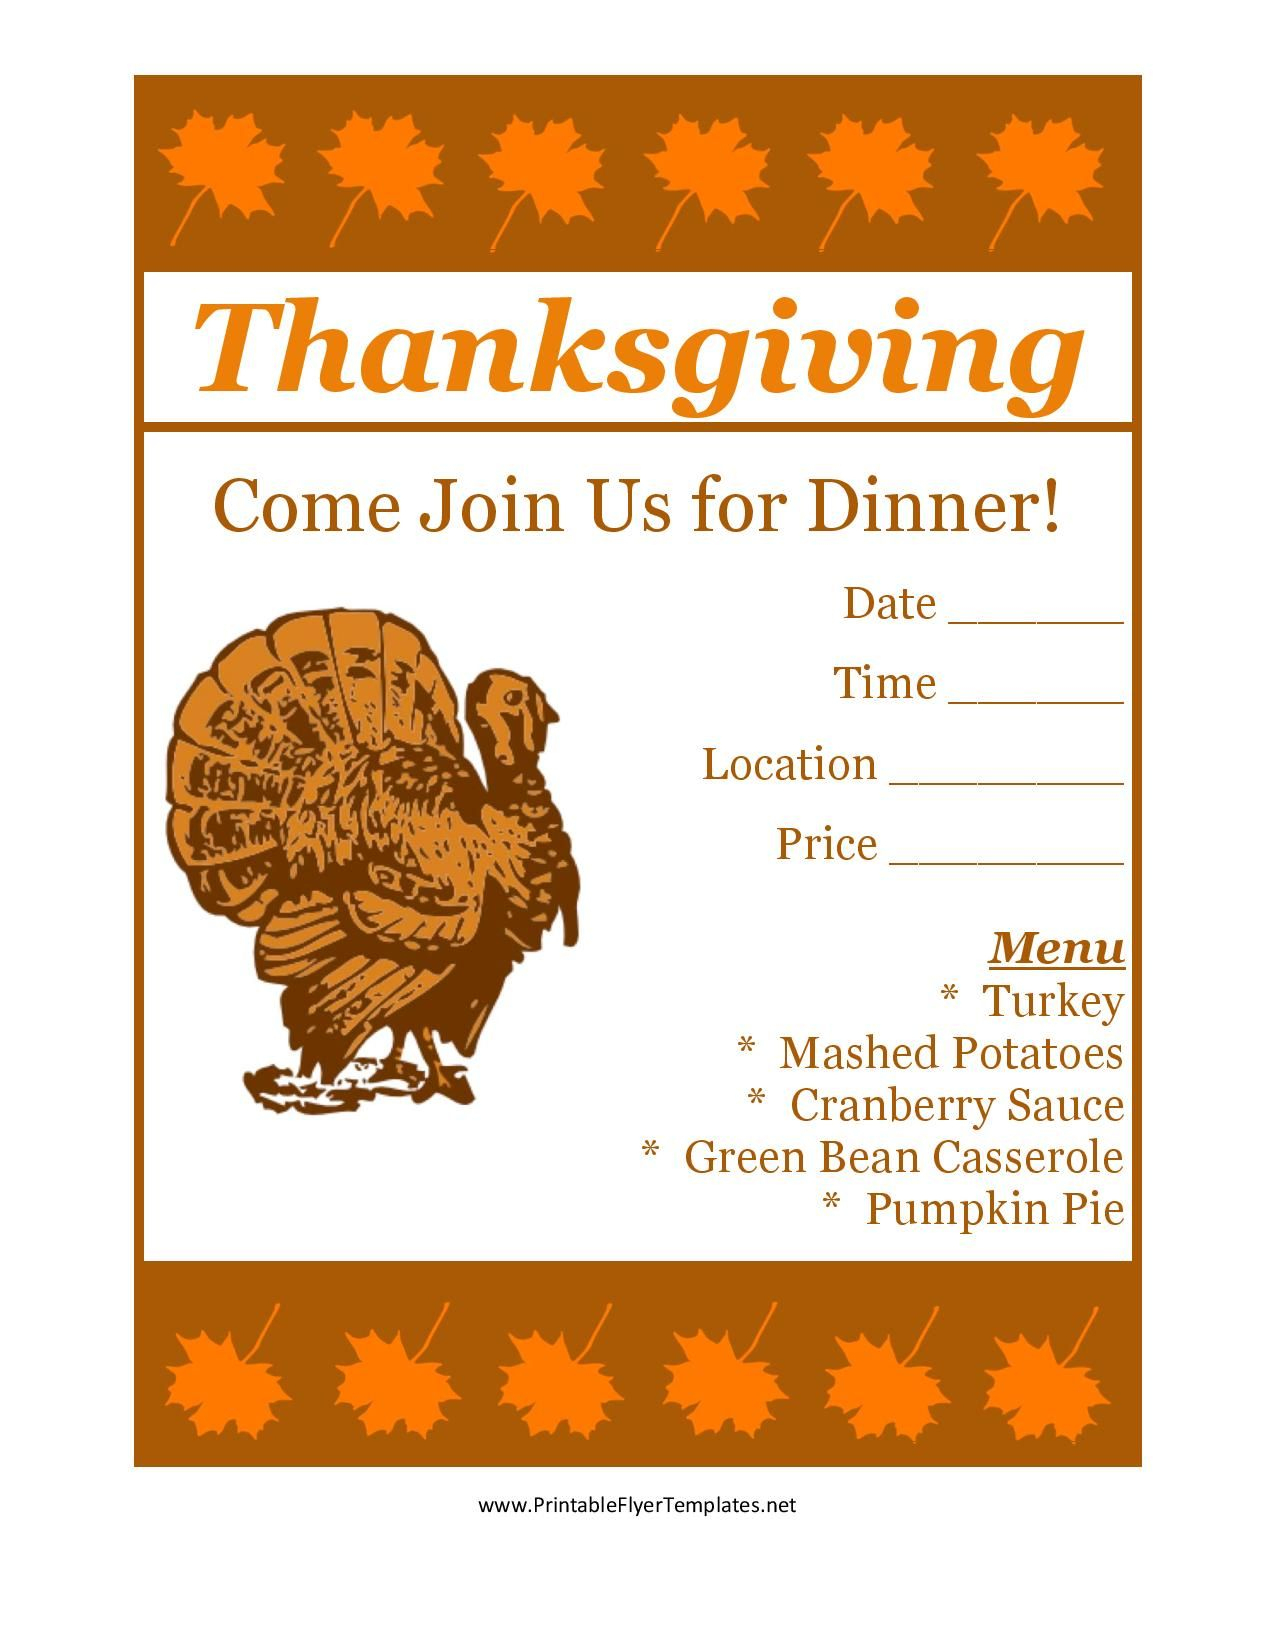 Free Printable Thanksgiving Flyer Invintation Template | Holiday's - Free Printable Flyers